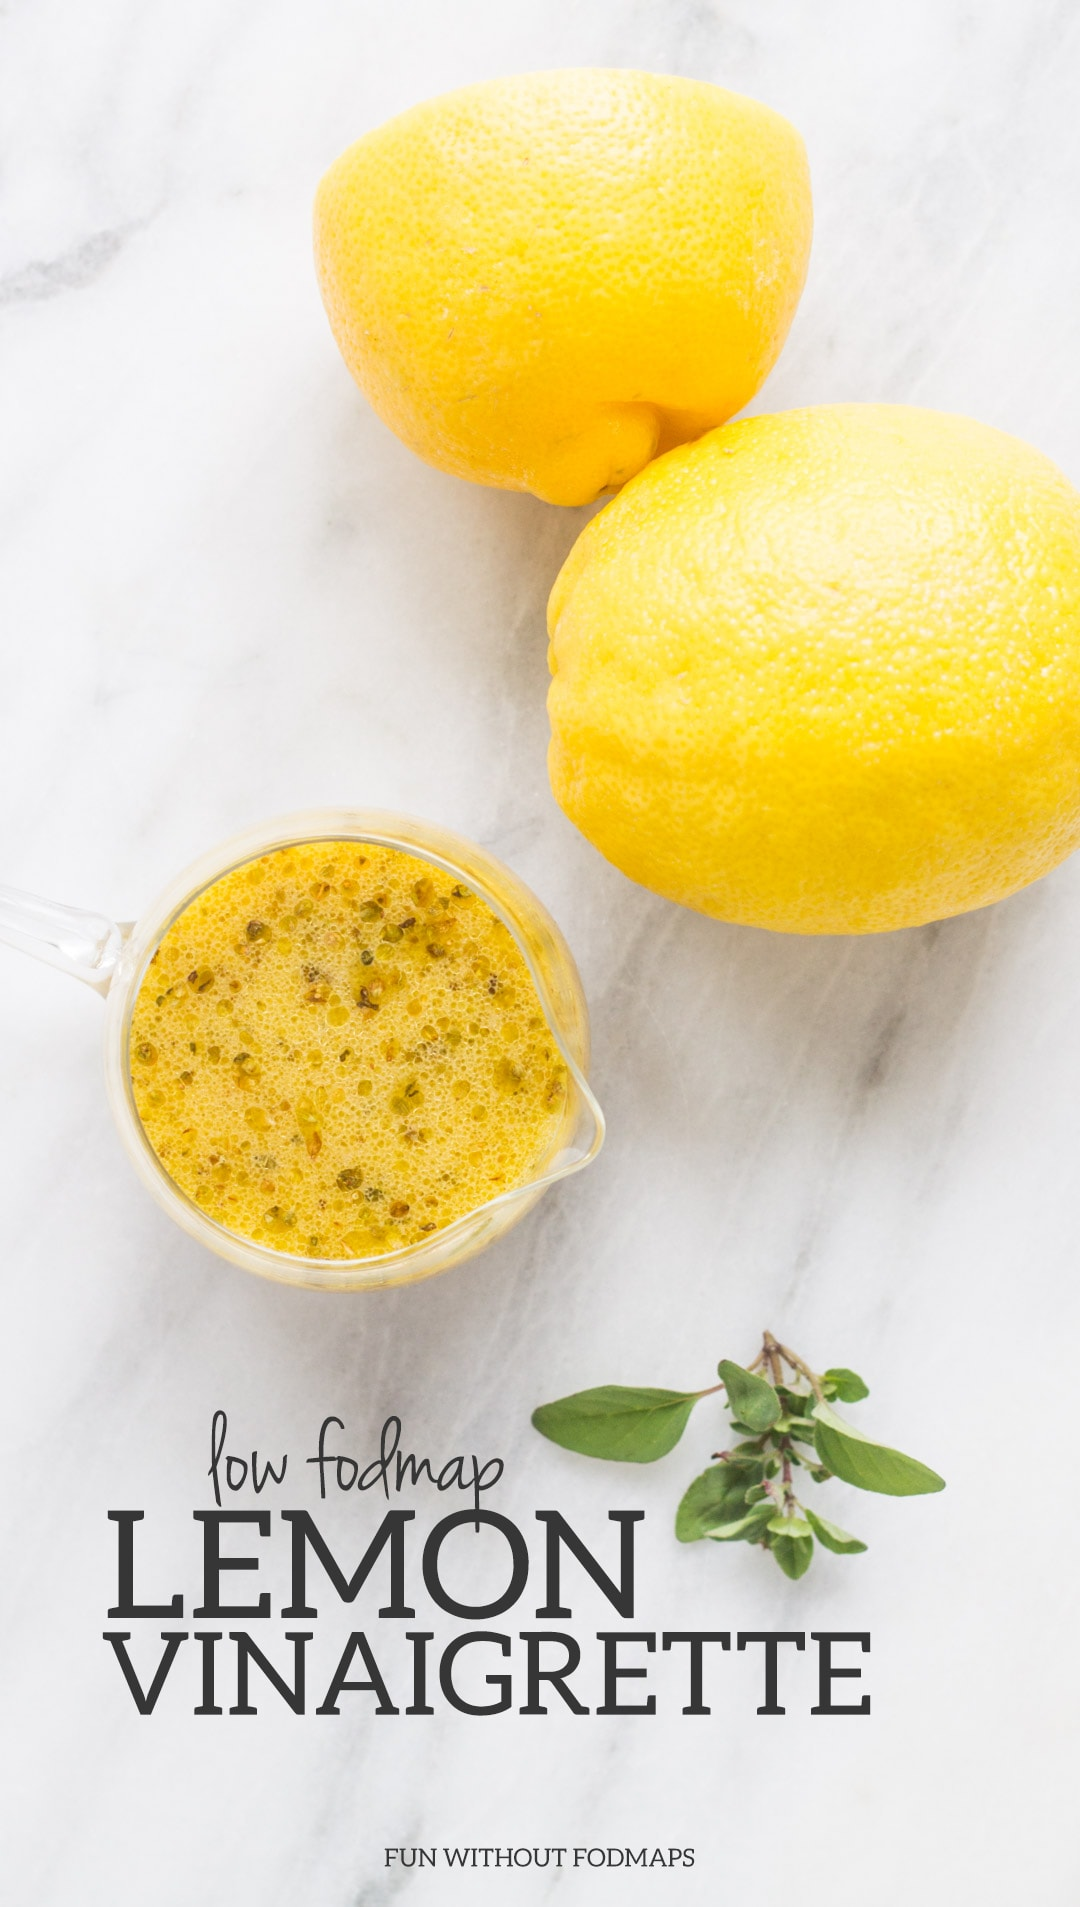 """A cup of low FODMAP lemon vinaigrette surrounded by lemons and herbs. In the white space, a black text overlay reads """"Low FODMAP Lemon Vinaigrette"""""""